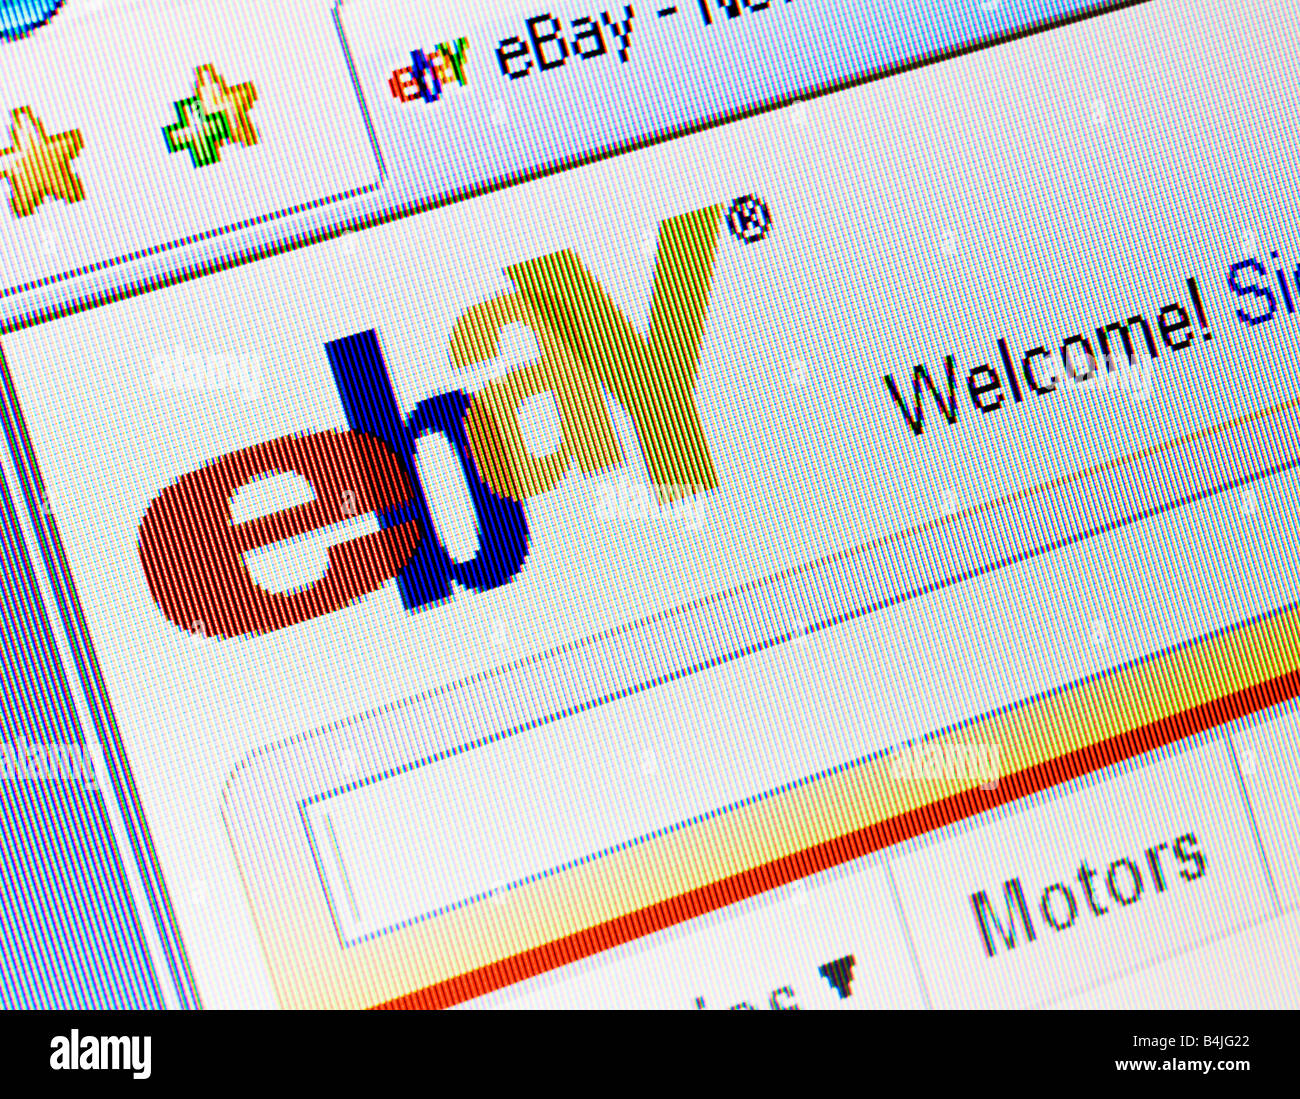 Ebay website splash screen and logo showing welcome message Stock Photo